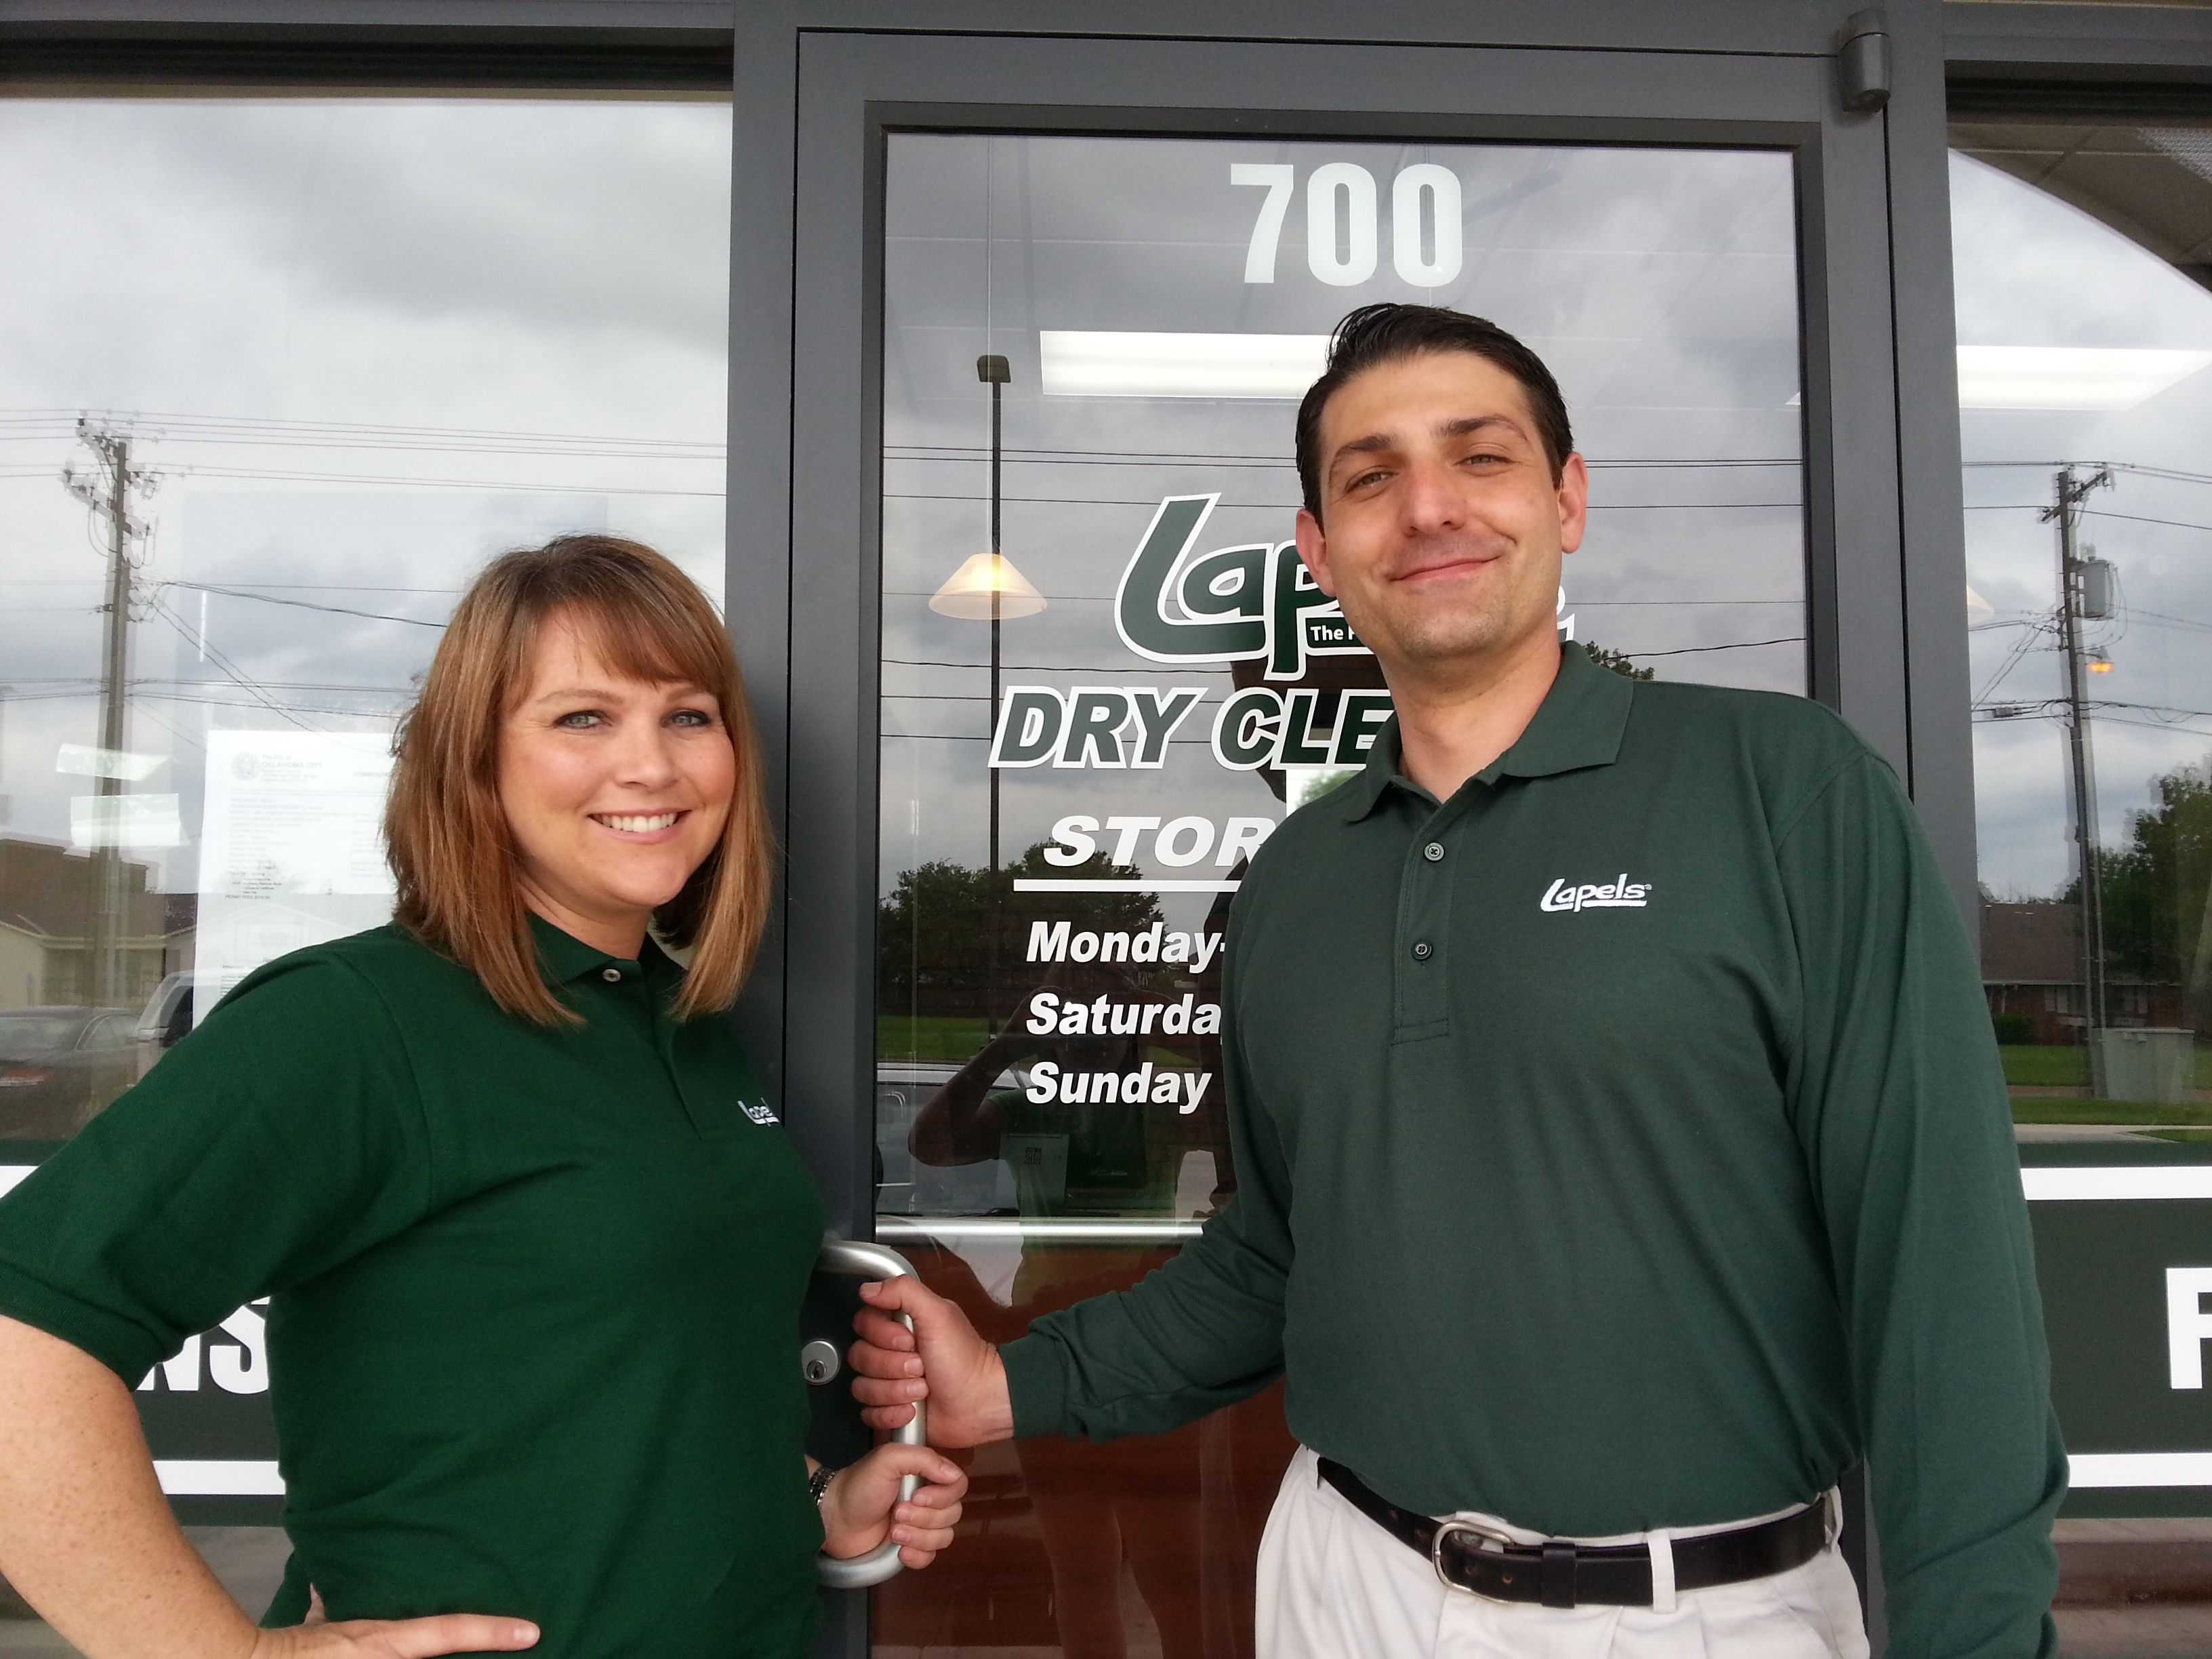 Lapels Dry Cleaning named a vet-friendly franchise